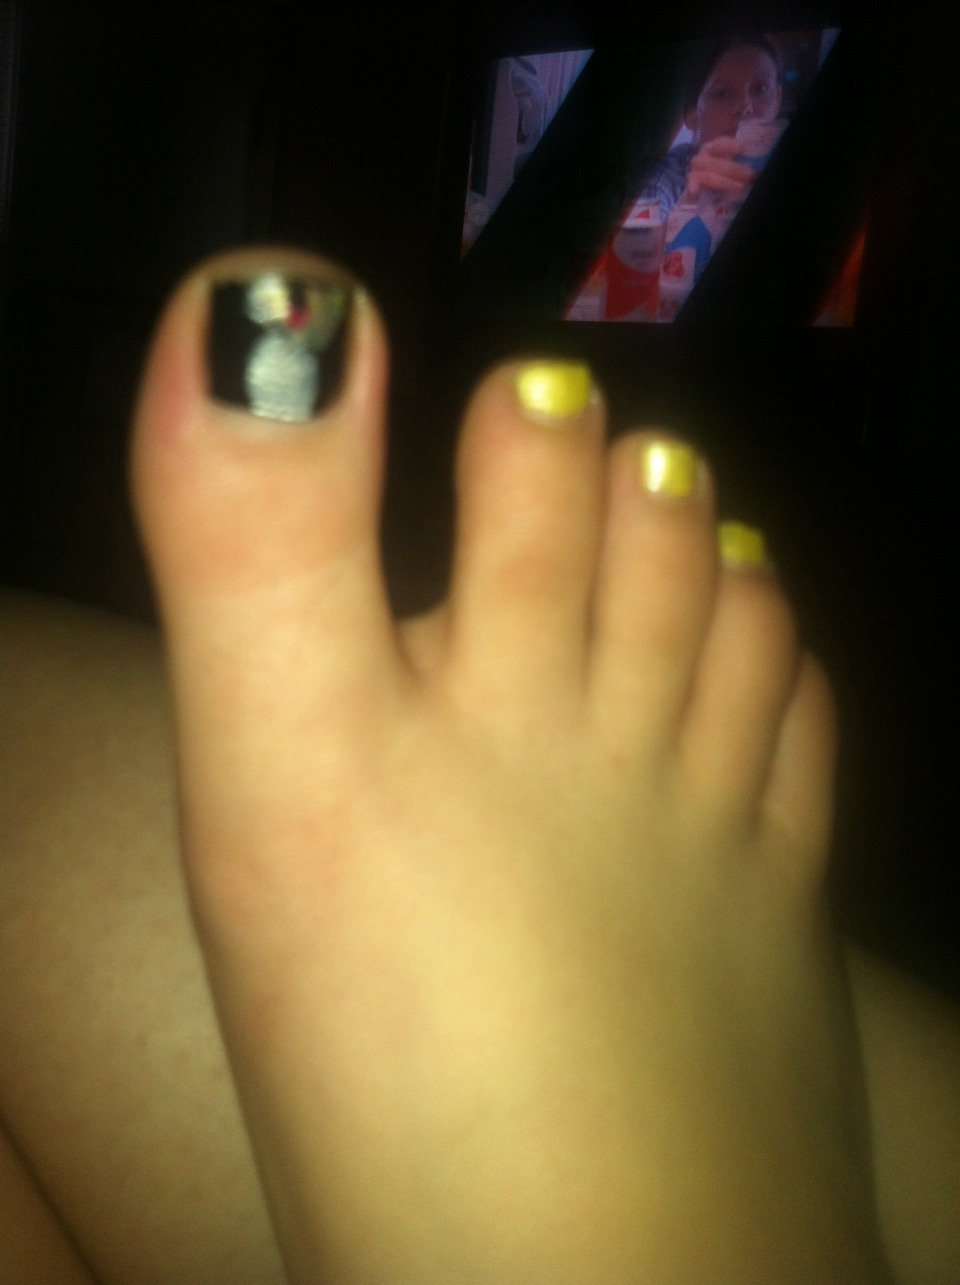 Big toe- black base, white rectangle, orange or yellow oval, and a black line for a wick.  The rest of the toes will be yellow for sunshine.